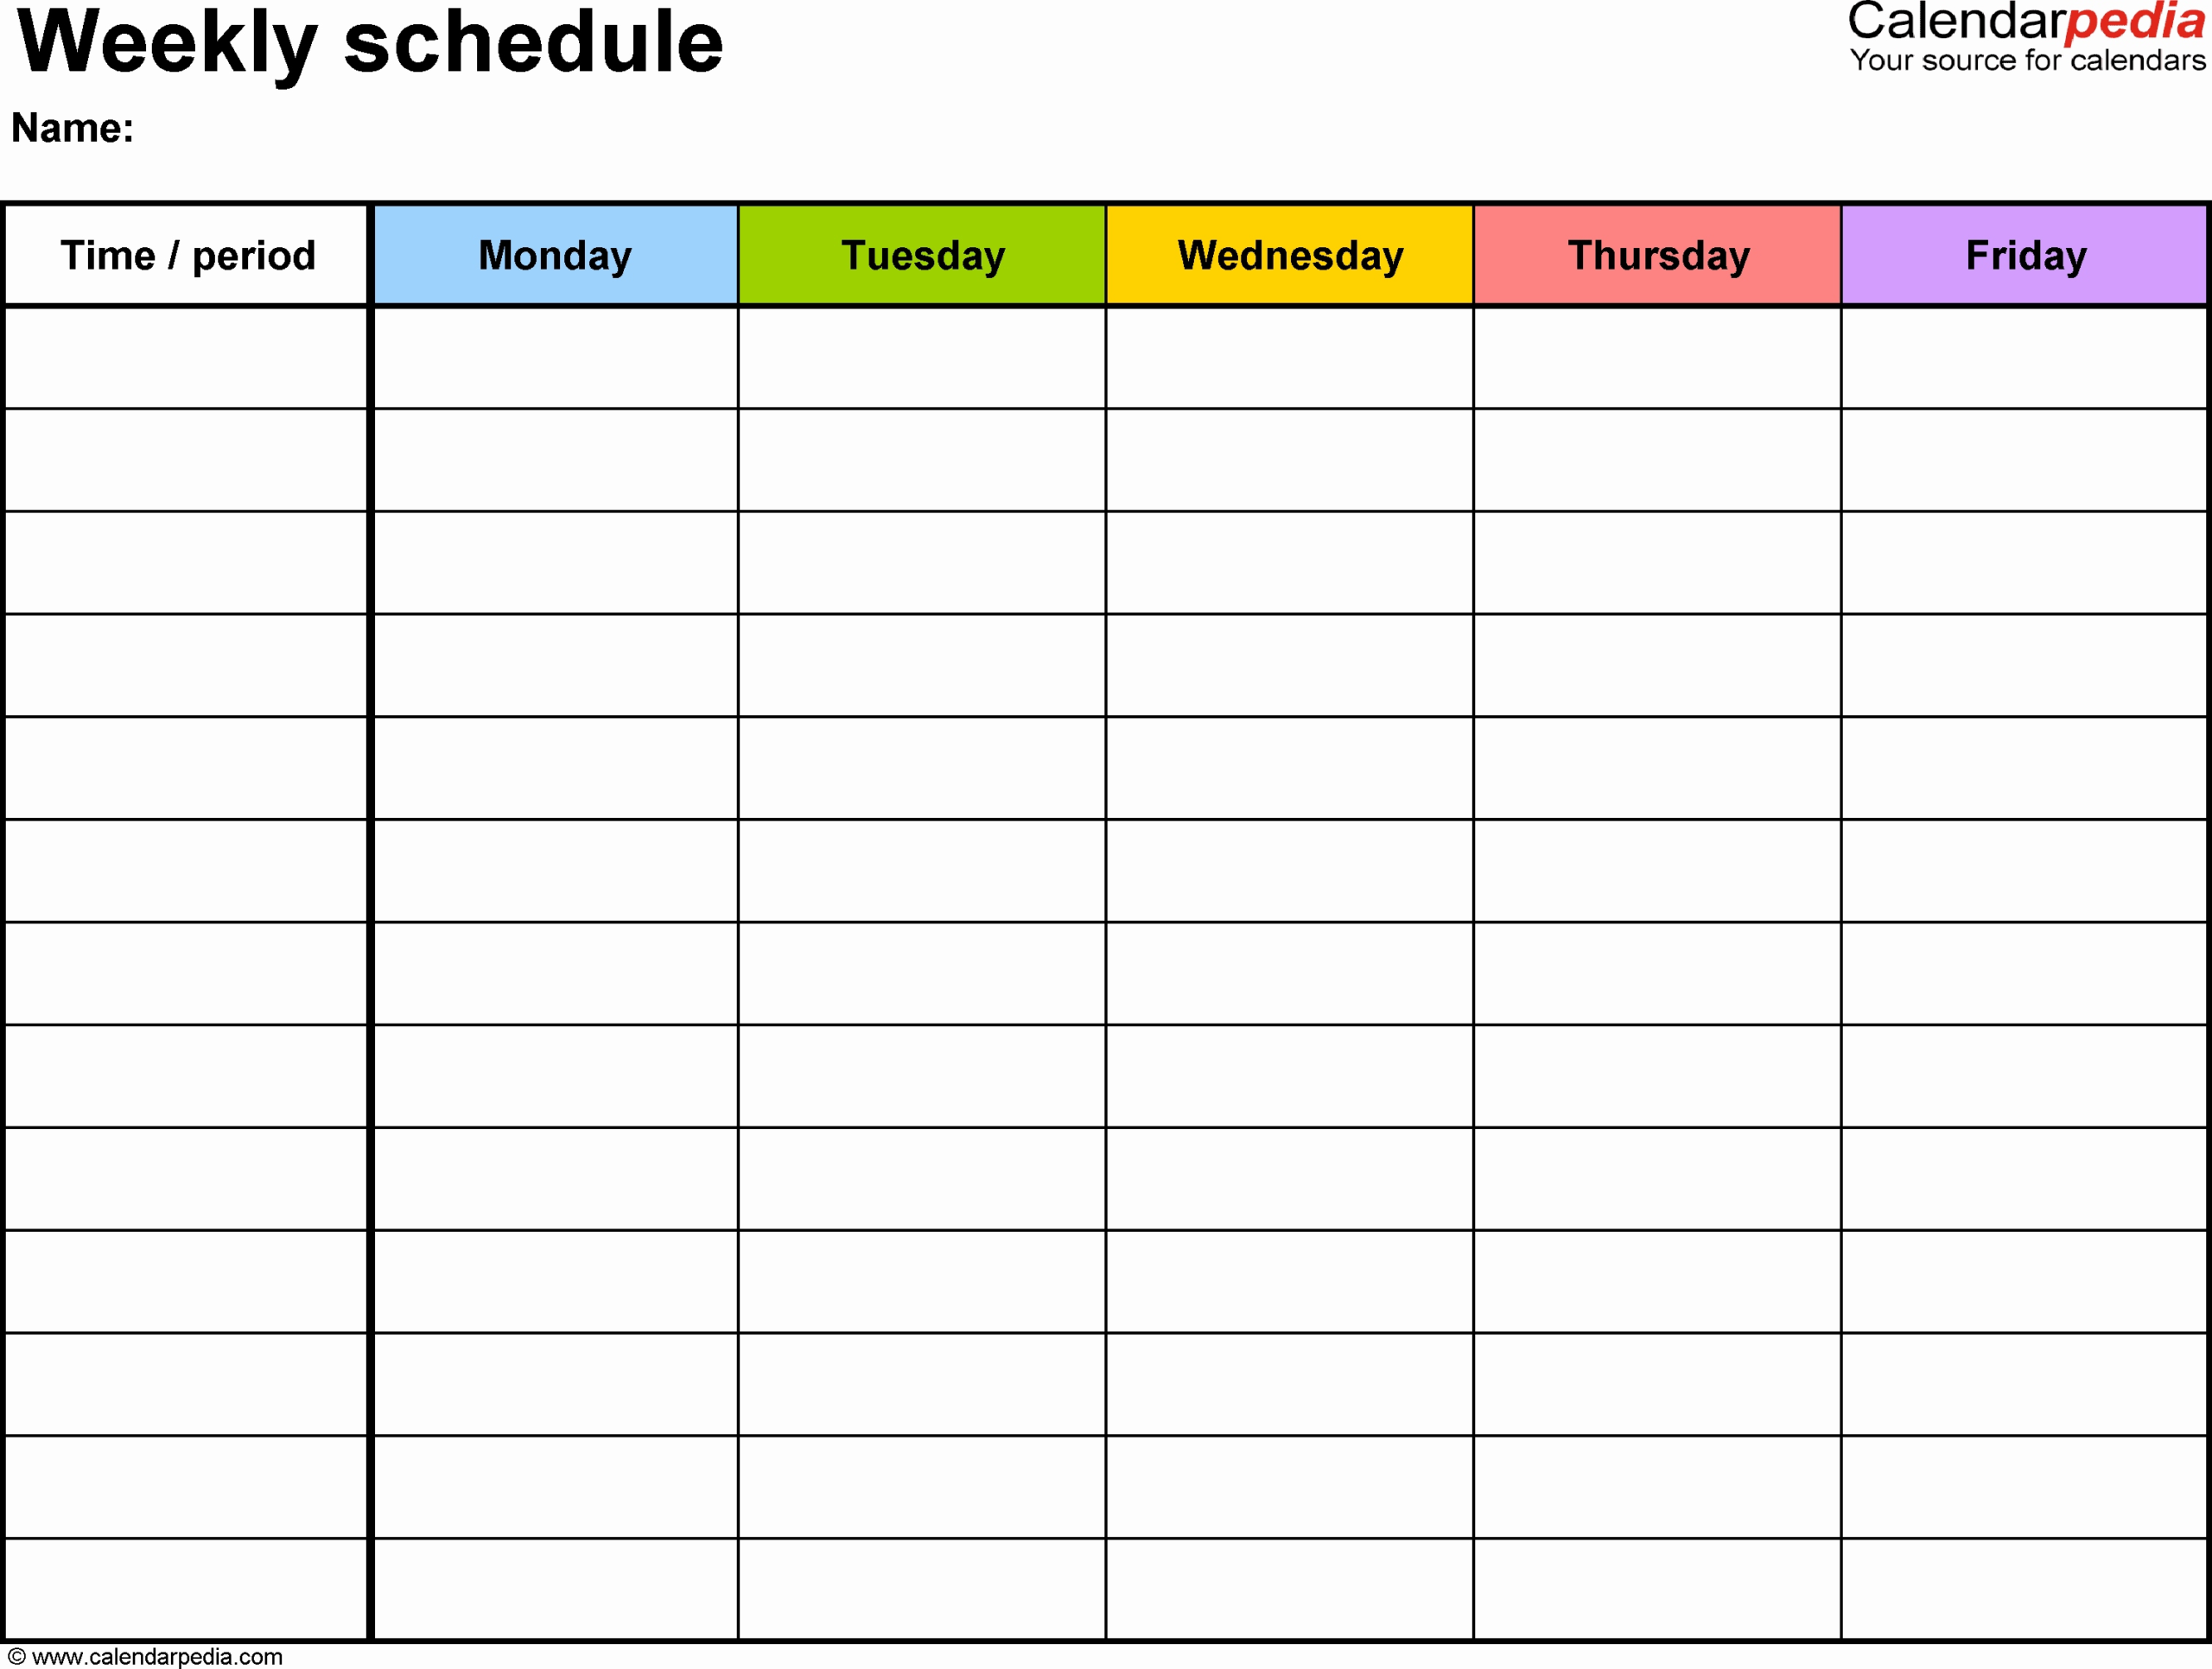 Is There A Calendar Template In Google Sheets